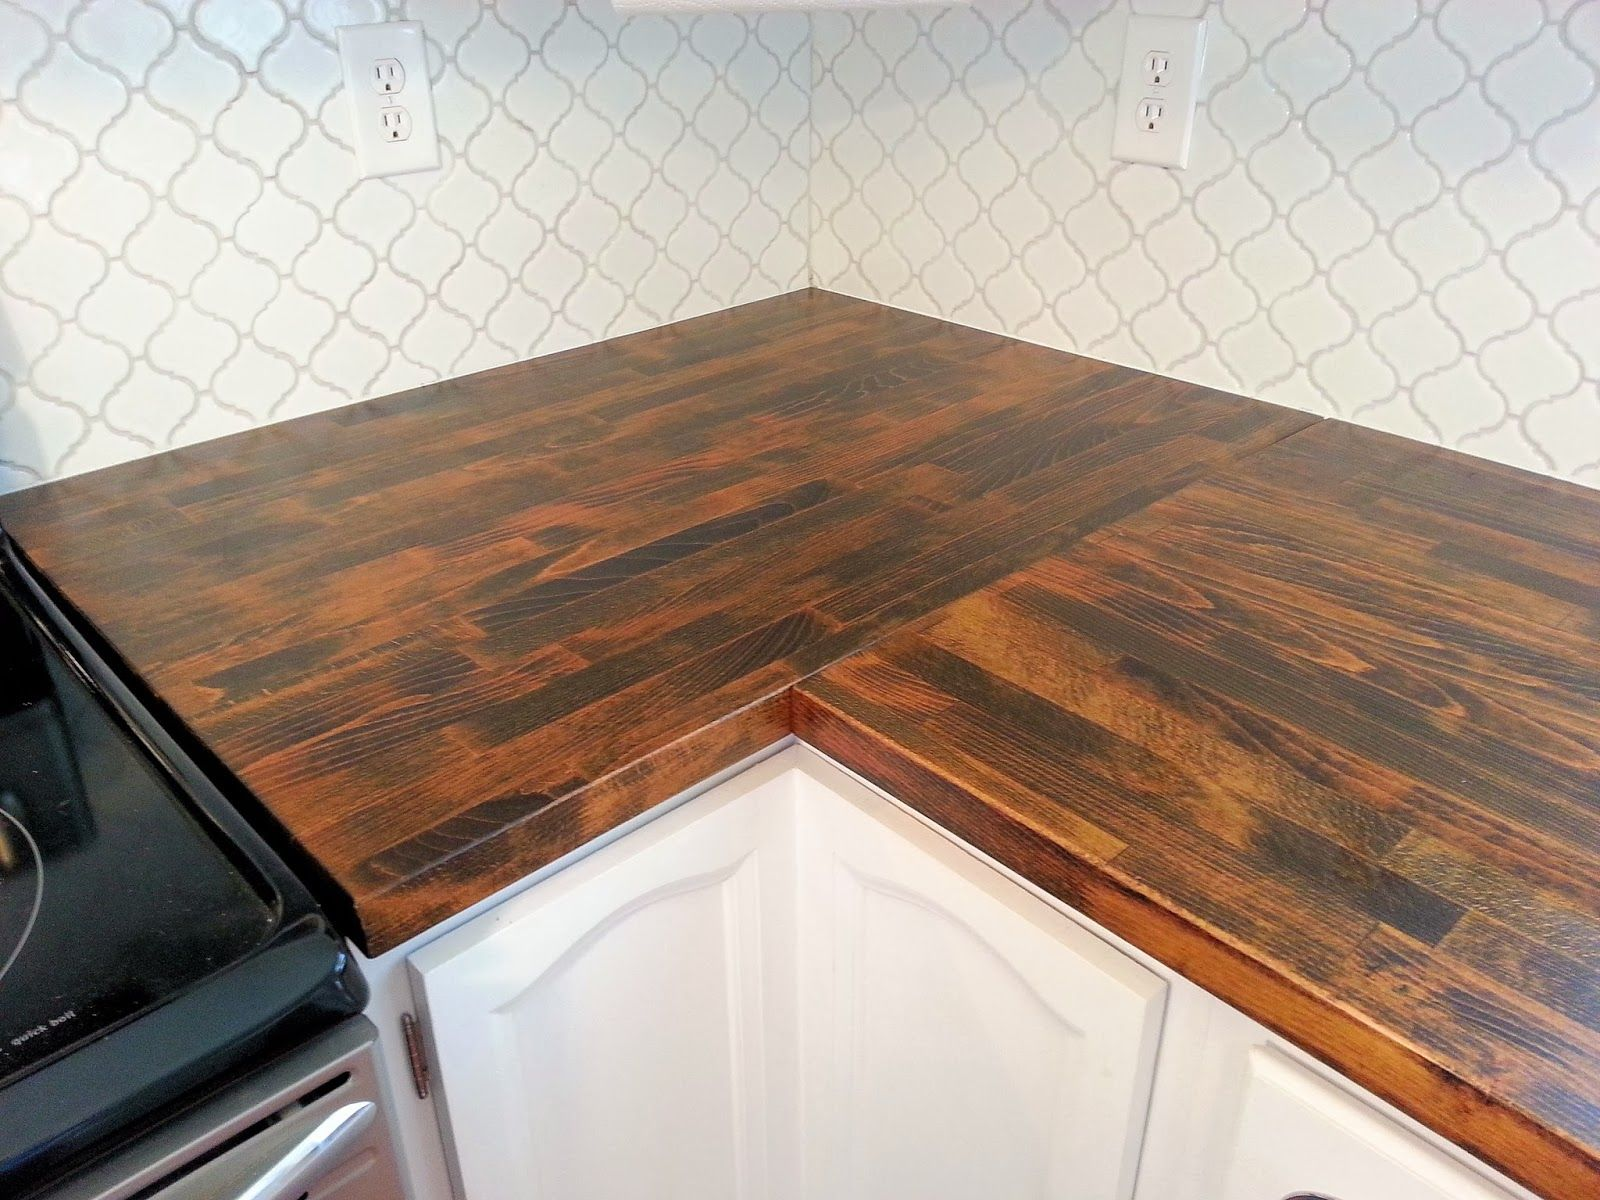 ikea wooden countertops wood kitchen countertops Images About Butcher Block On Pinterest Countertops Wood